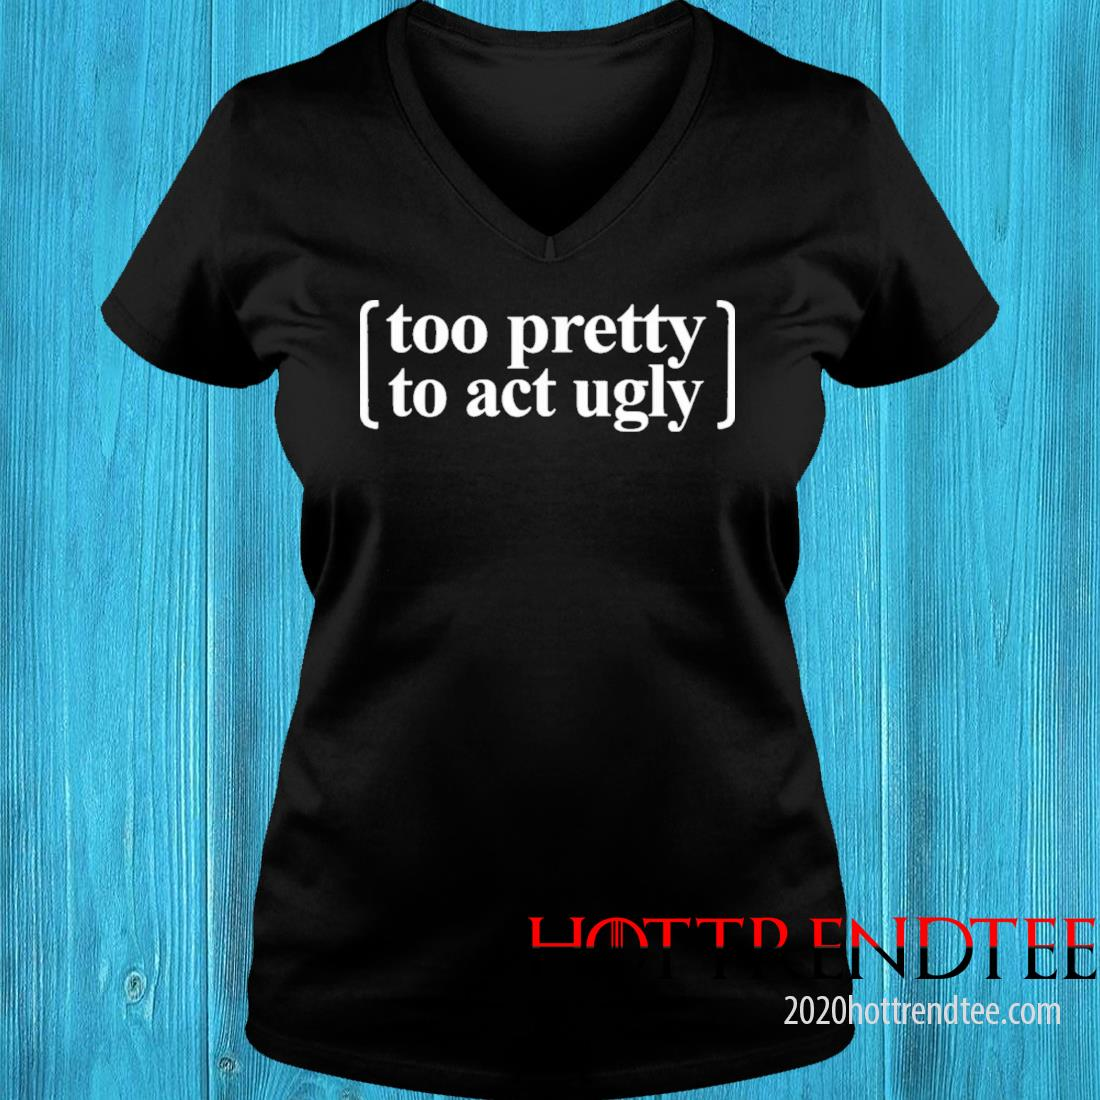 Too Pretty To Act Ugly Shirt v-neck tee